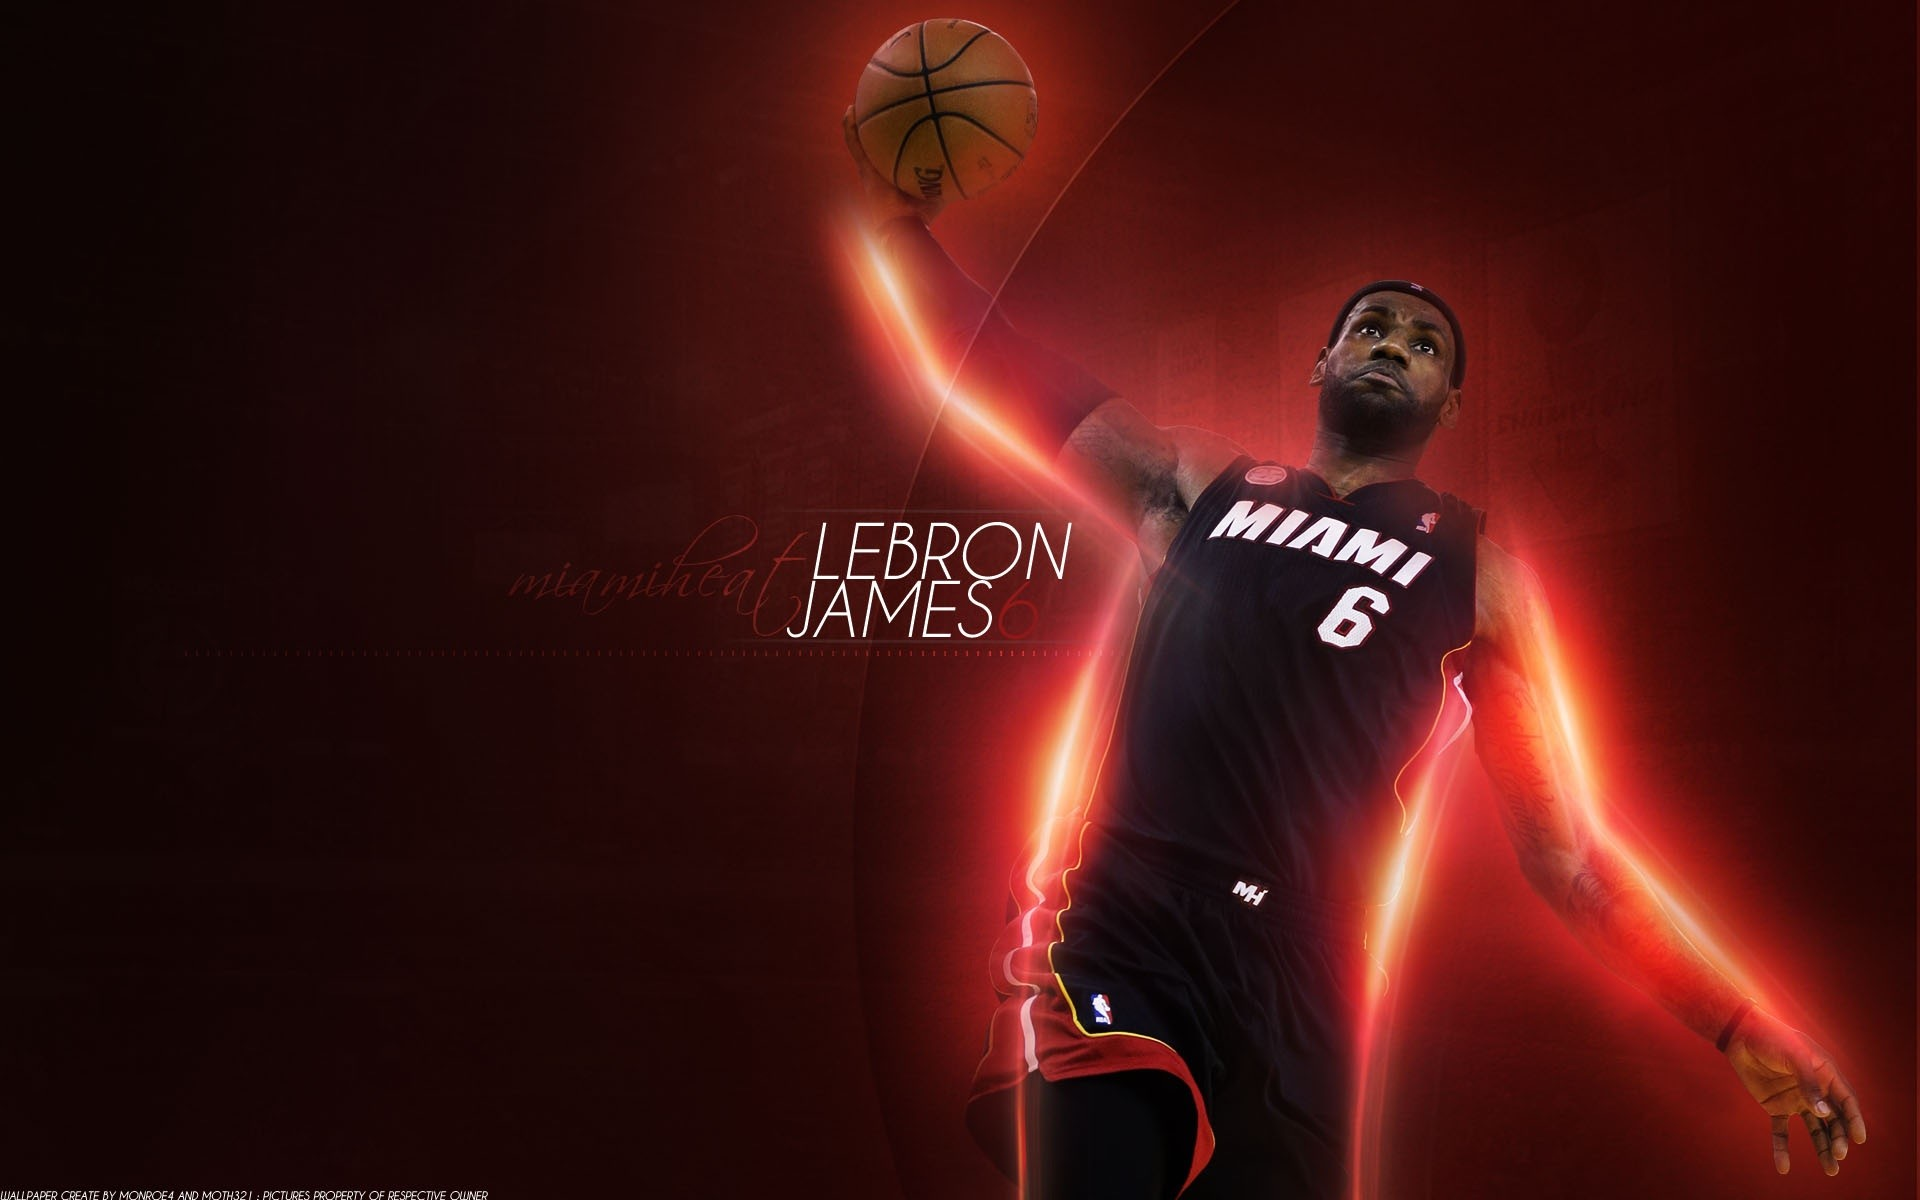 1920x1200 lebron james wallpaper dunk - Google Search